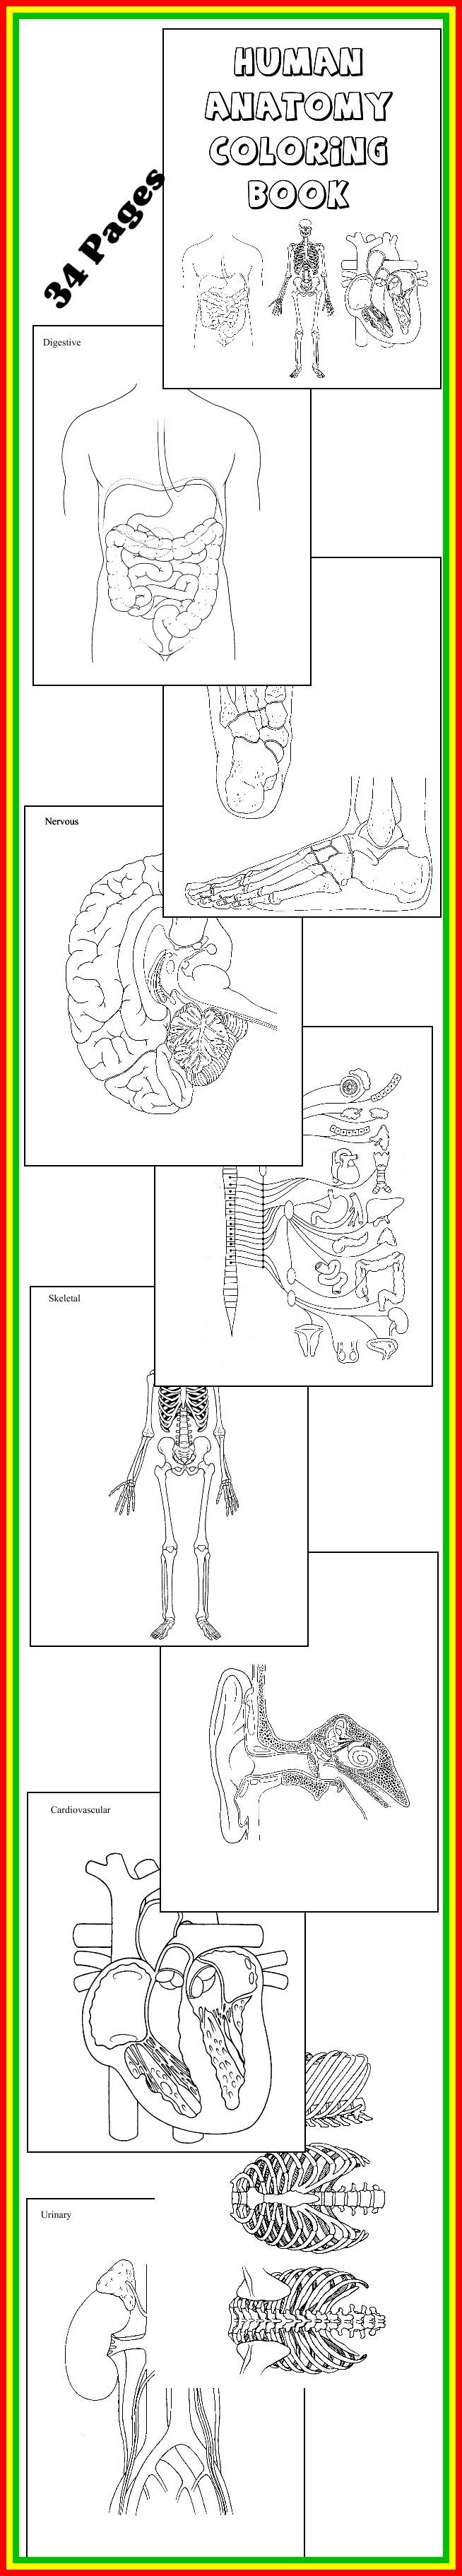 * SCIENCE DOWNLOAD ~ HUMAN ANATOMY COLORING BOOK * 32 diagrams to color and labe…Divine Timing Raymond